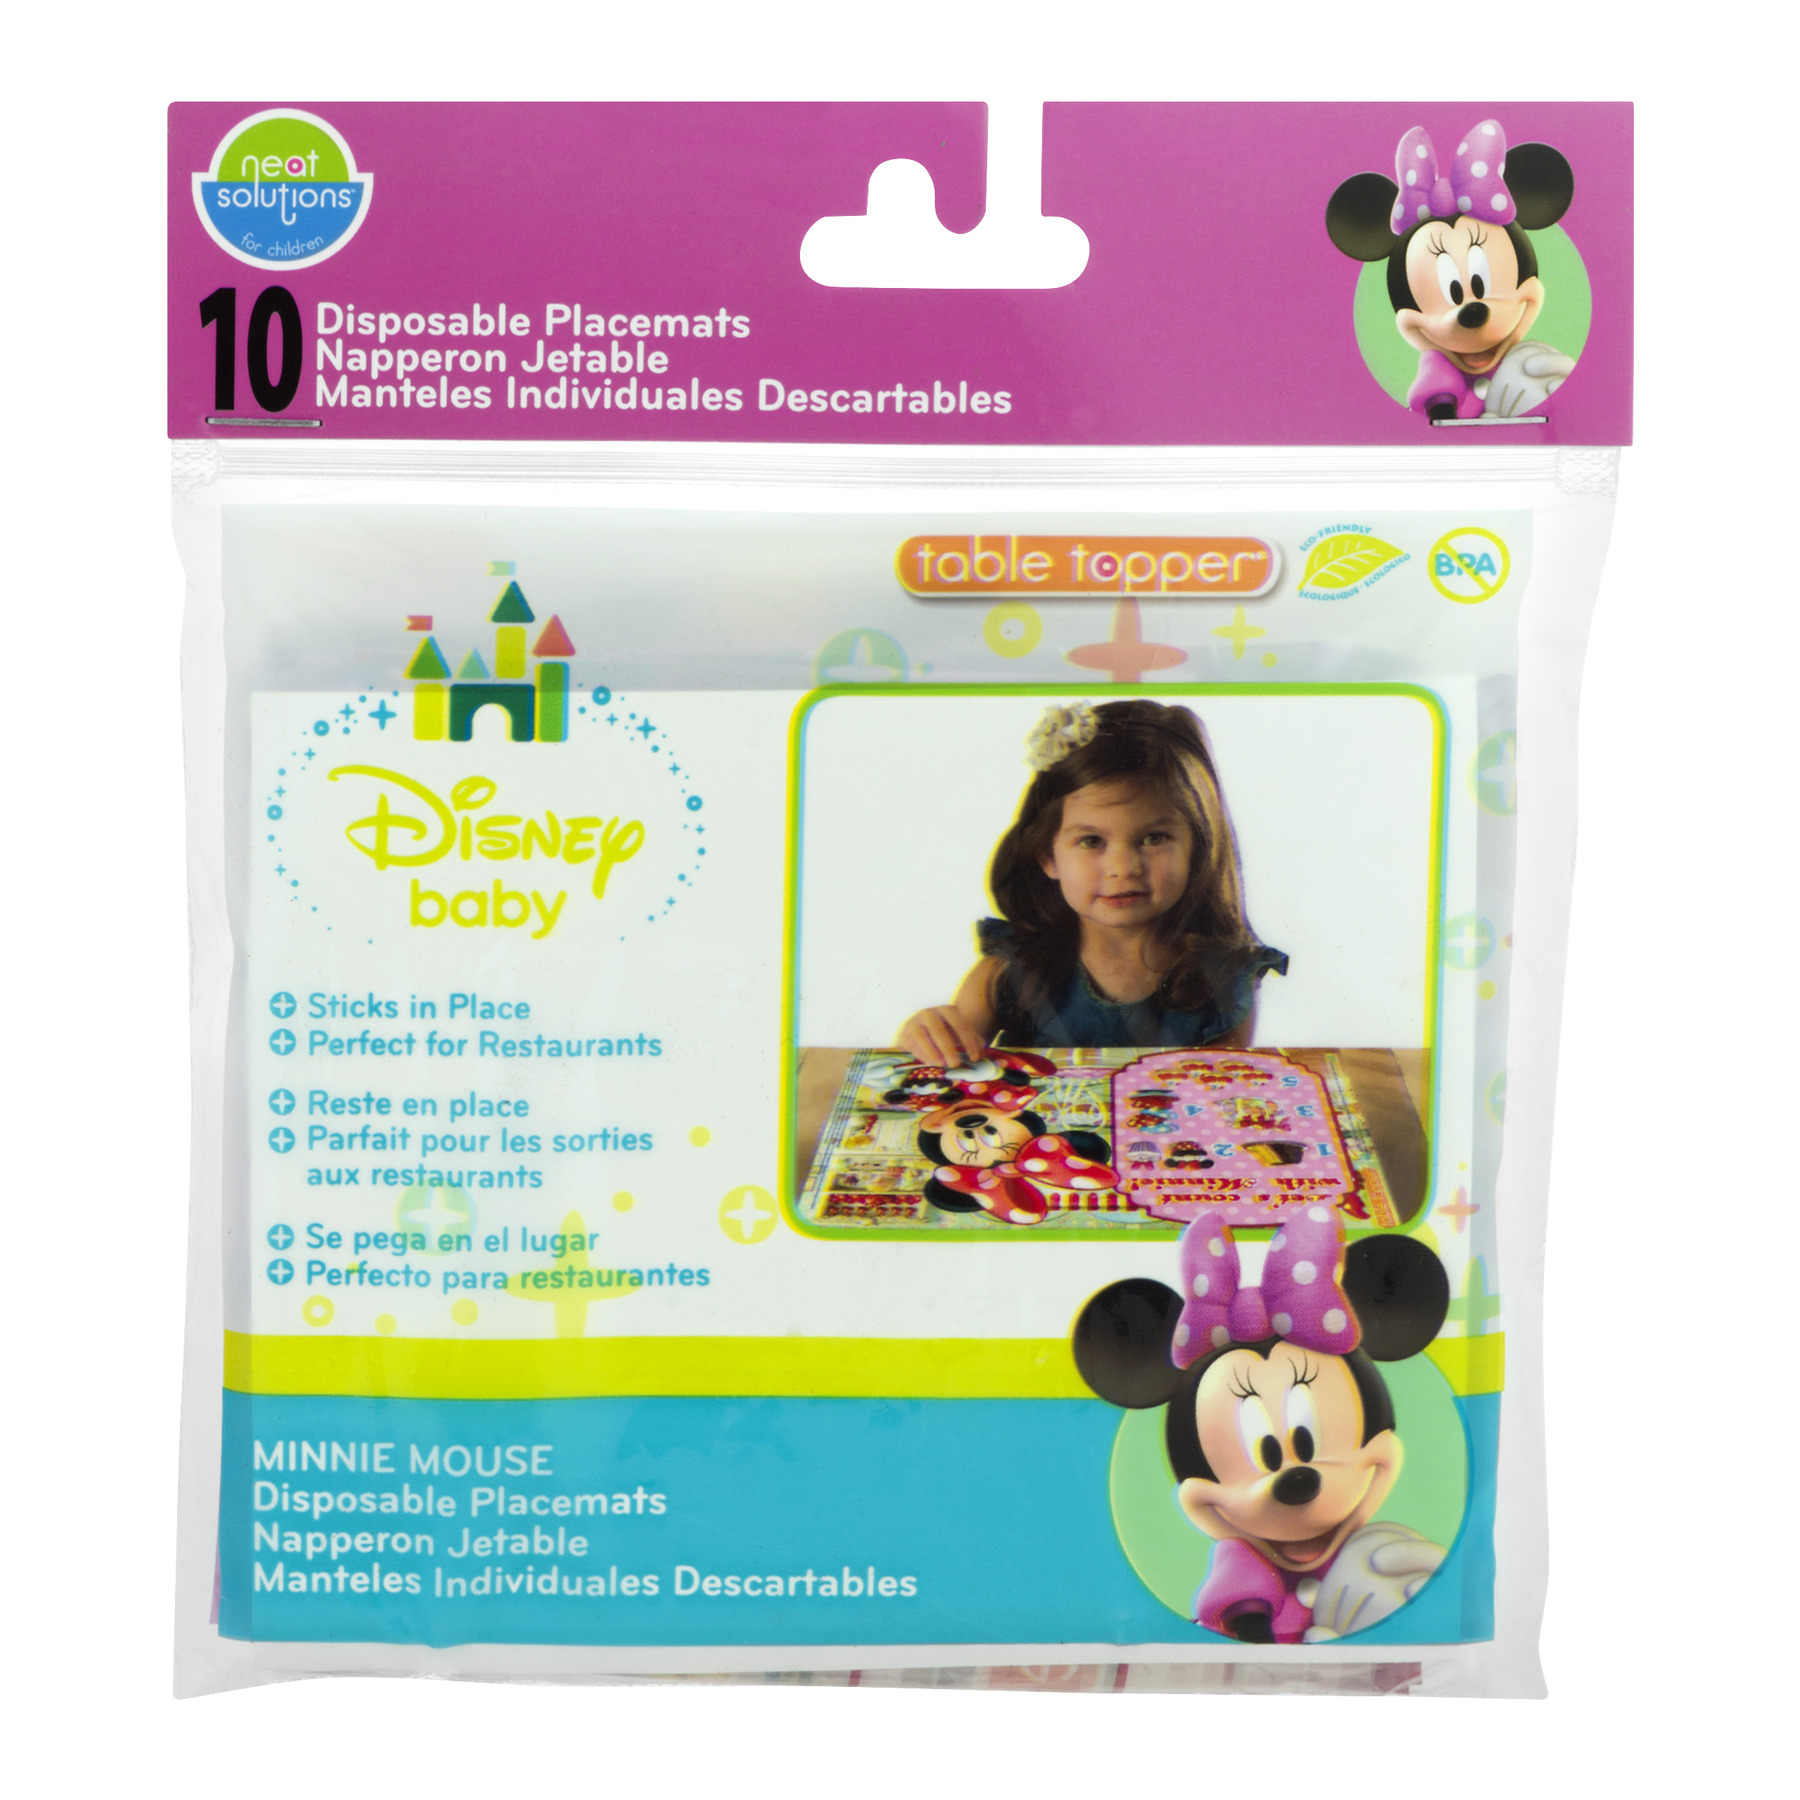 Neat Solutions Disney Minnie Mouse Disposable Placemats - 10 CT10.0 CT